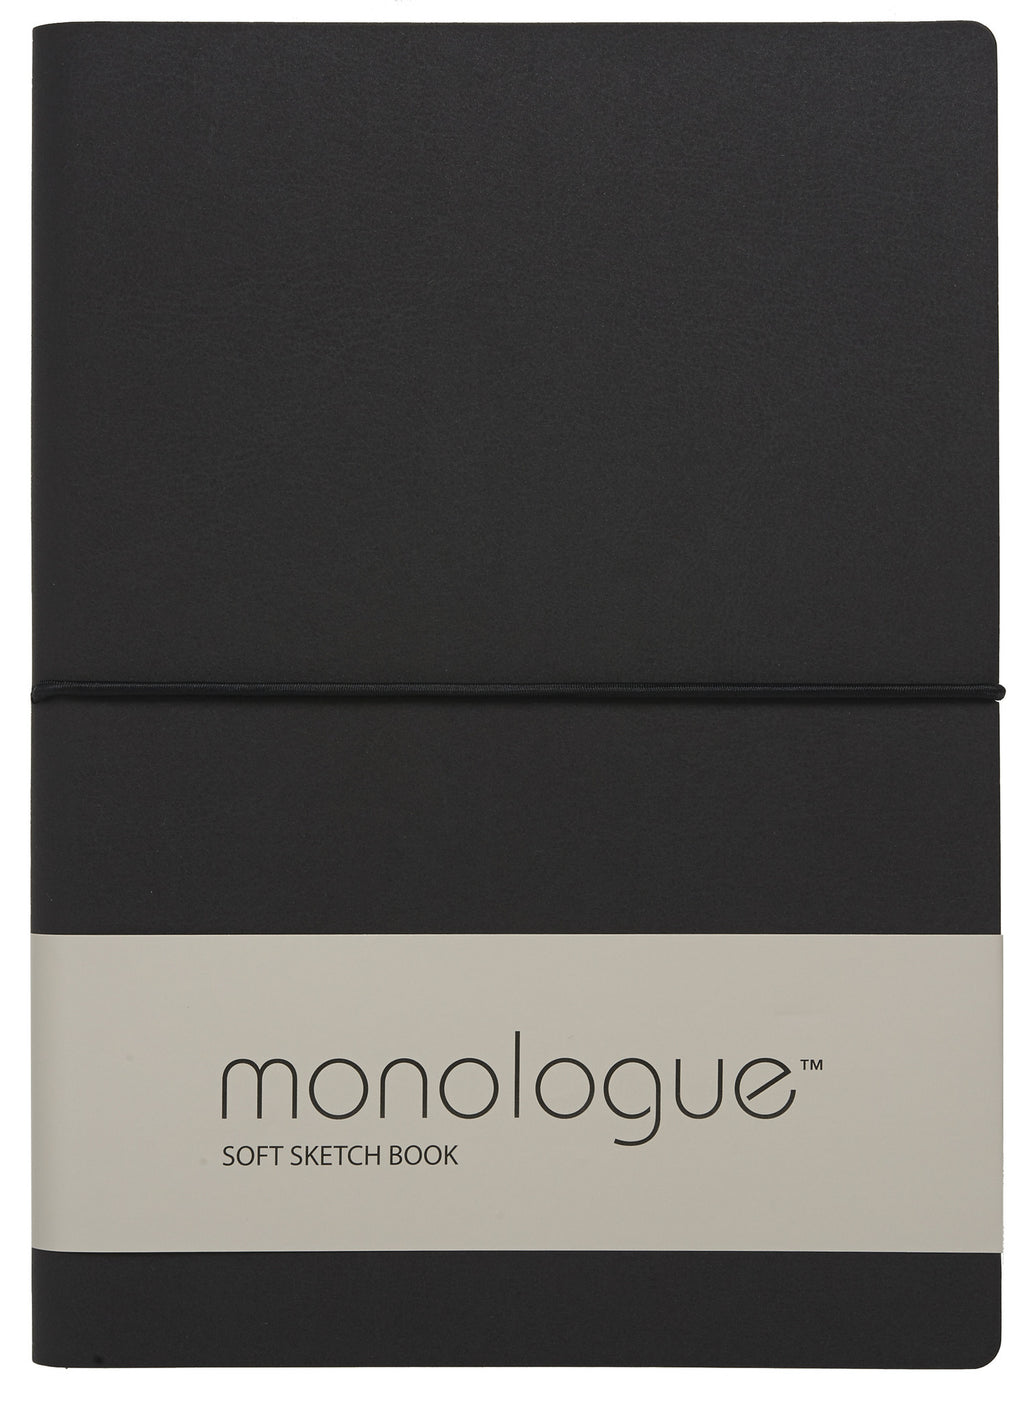 Monologue Soft Sketch Book - 200gsm - Art Nebula